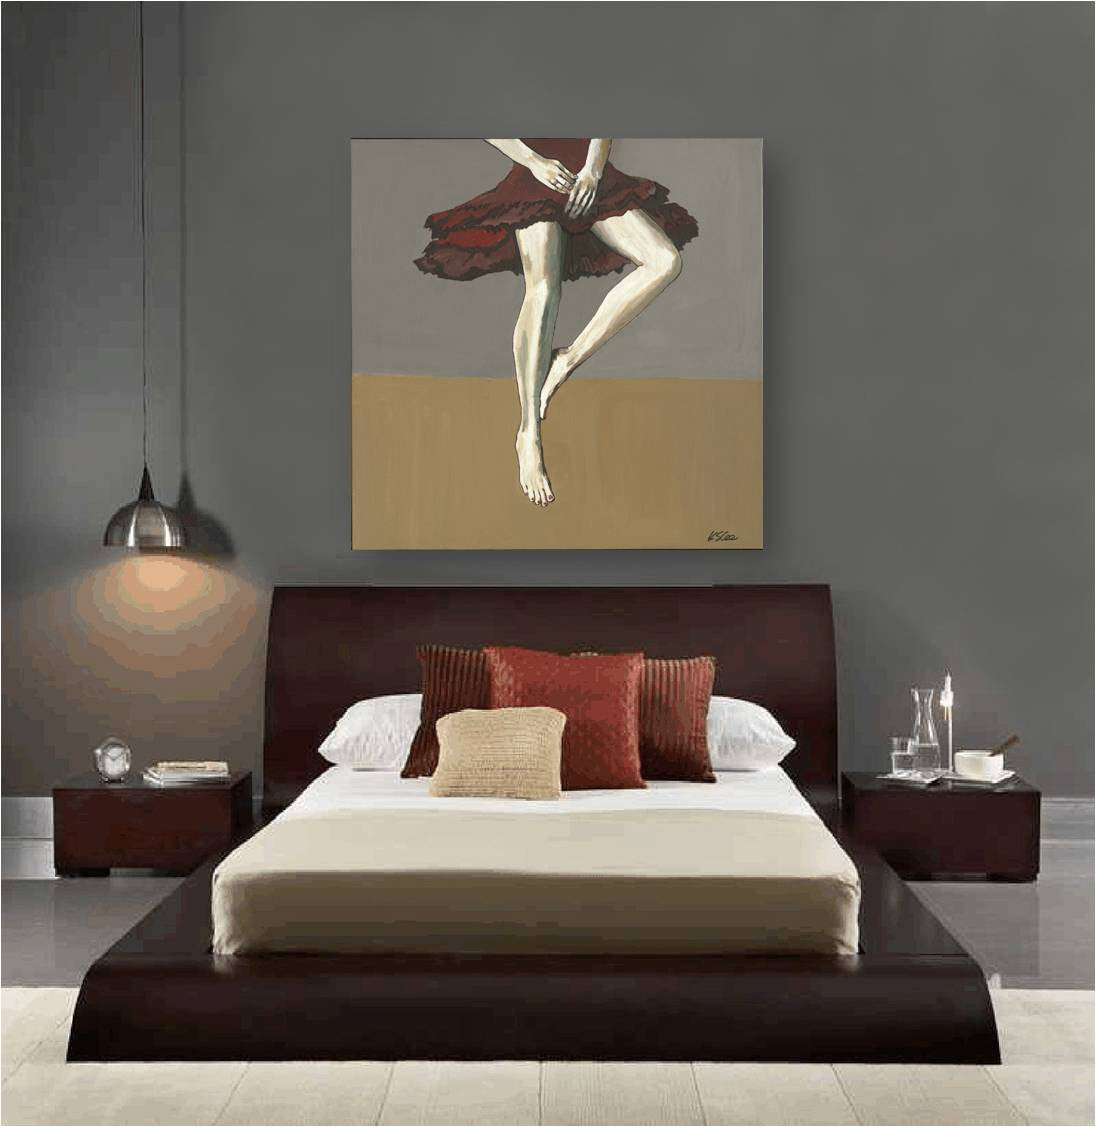 Figurative sexy woman modern artwork canvas print large wall art bedroom decor artwork